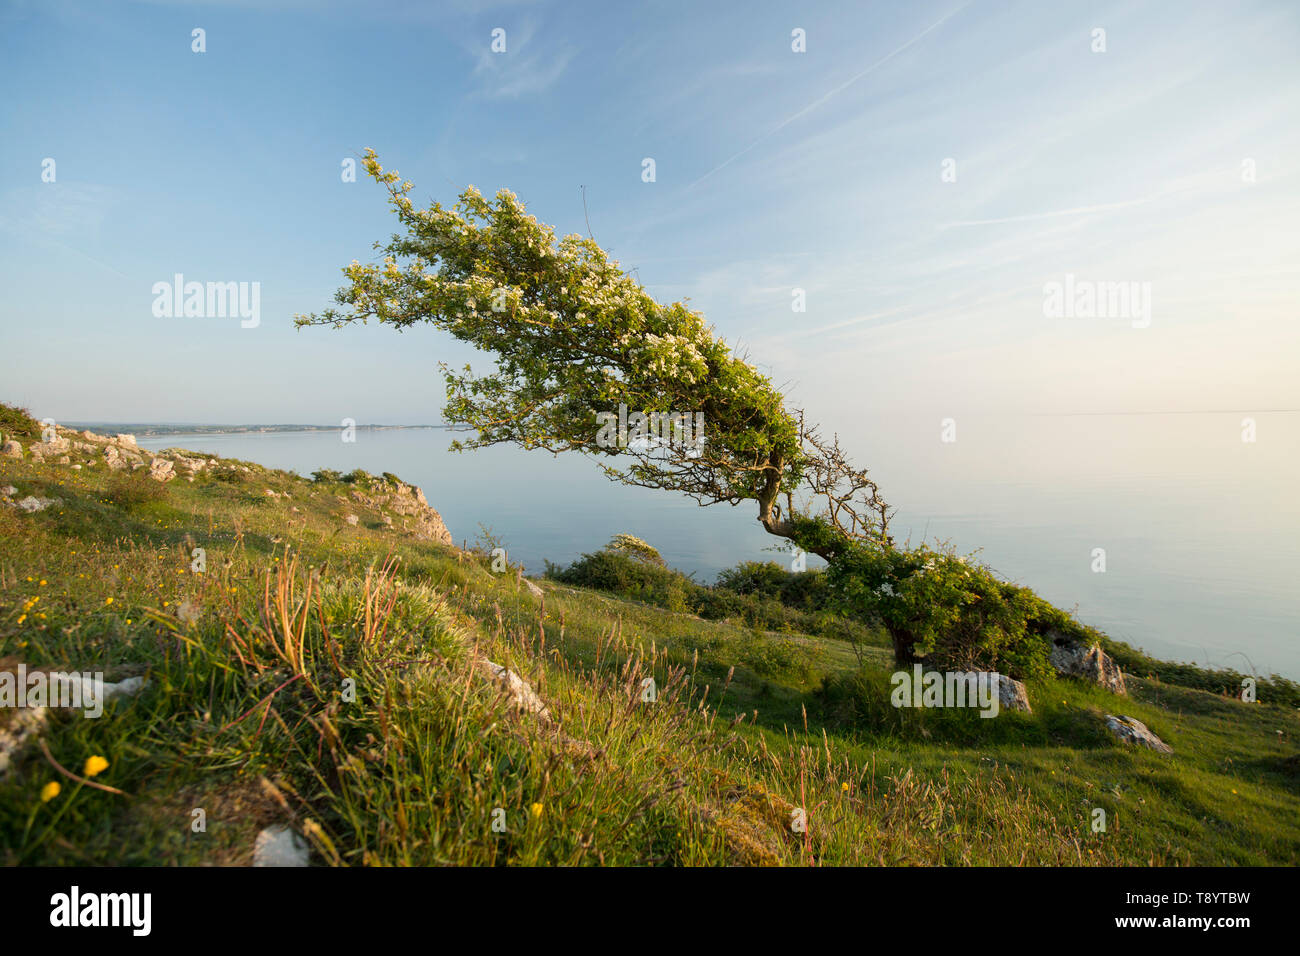 A single, flowering hawthorn tree, Crataegus monogyna, in May on a sunny afternoon growing on cliffs on the edge of Morecambe Bay at high tide close t - Stock Image